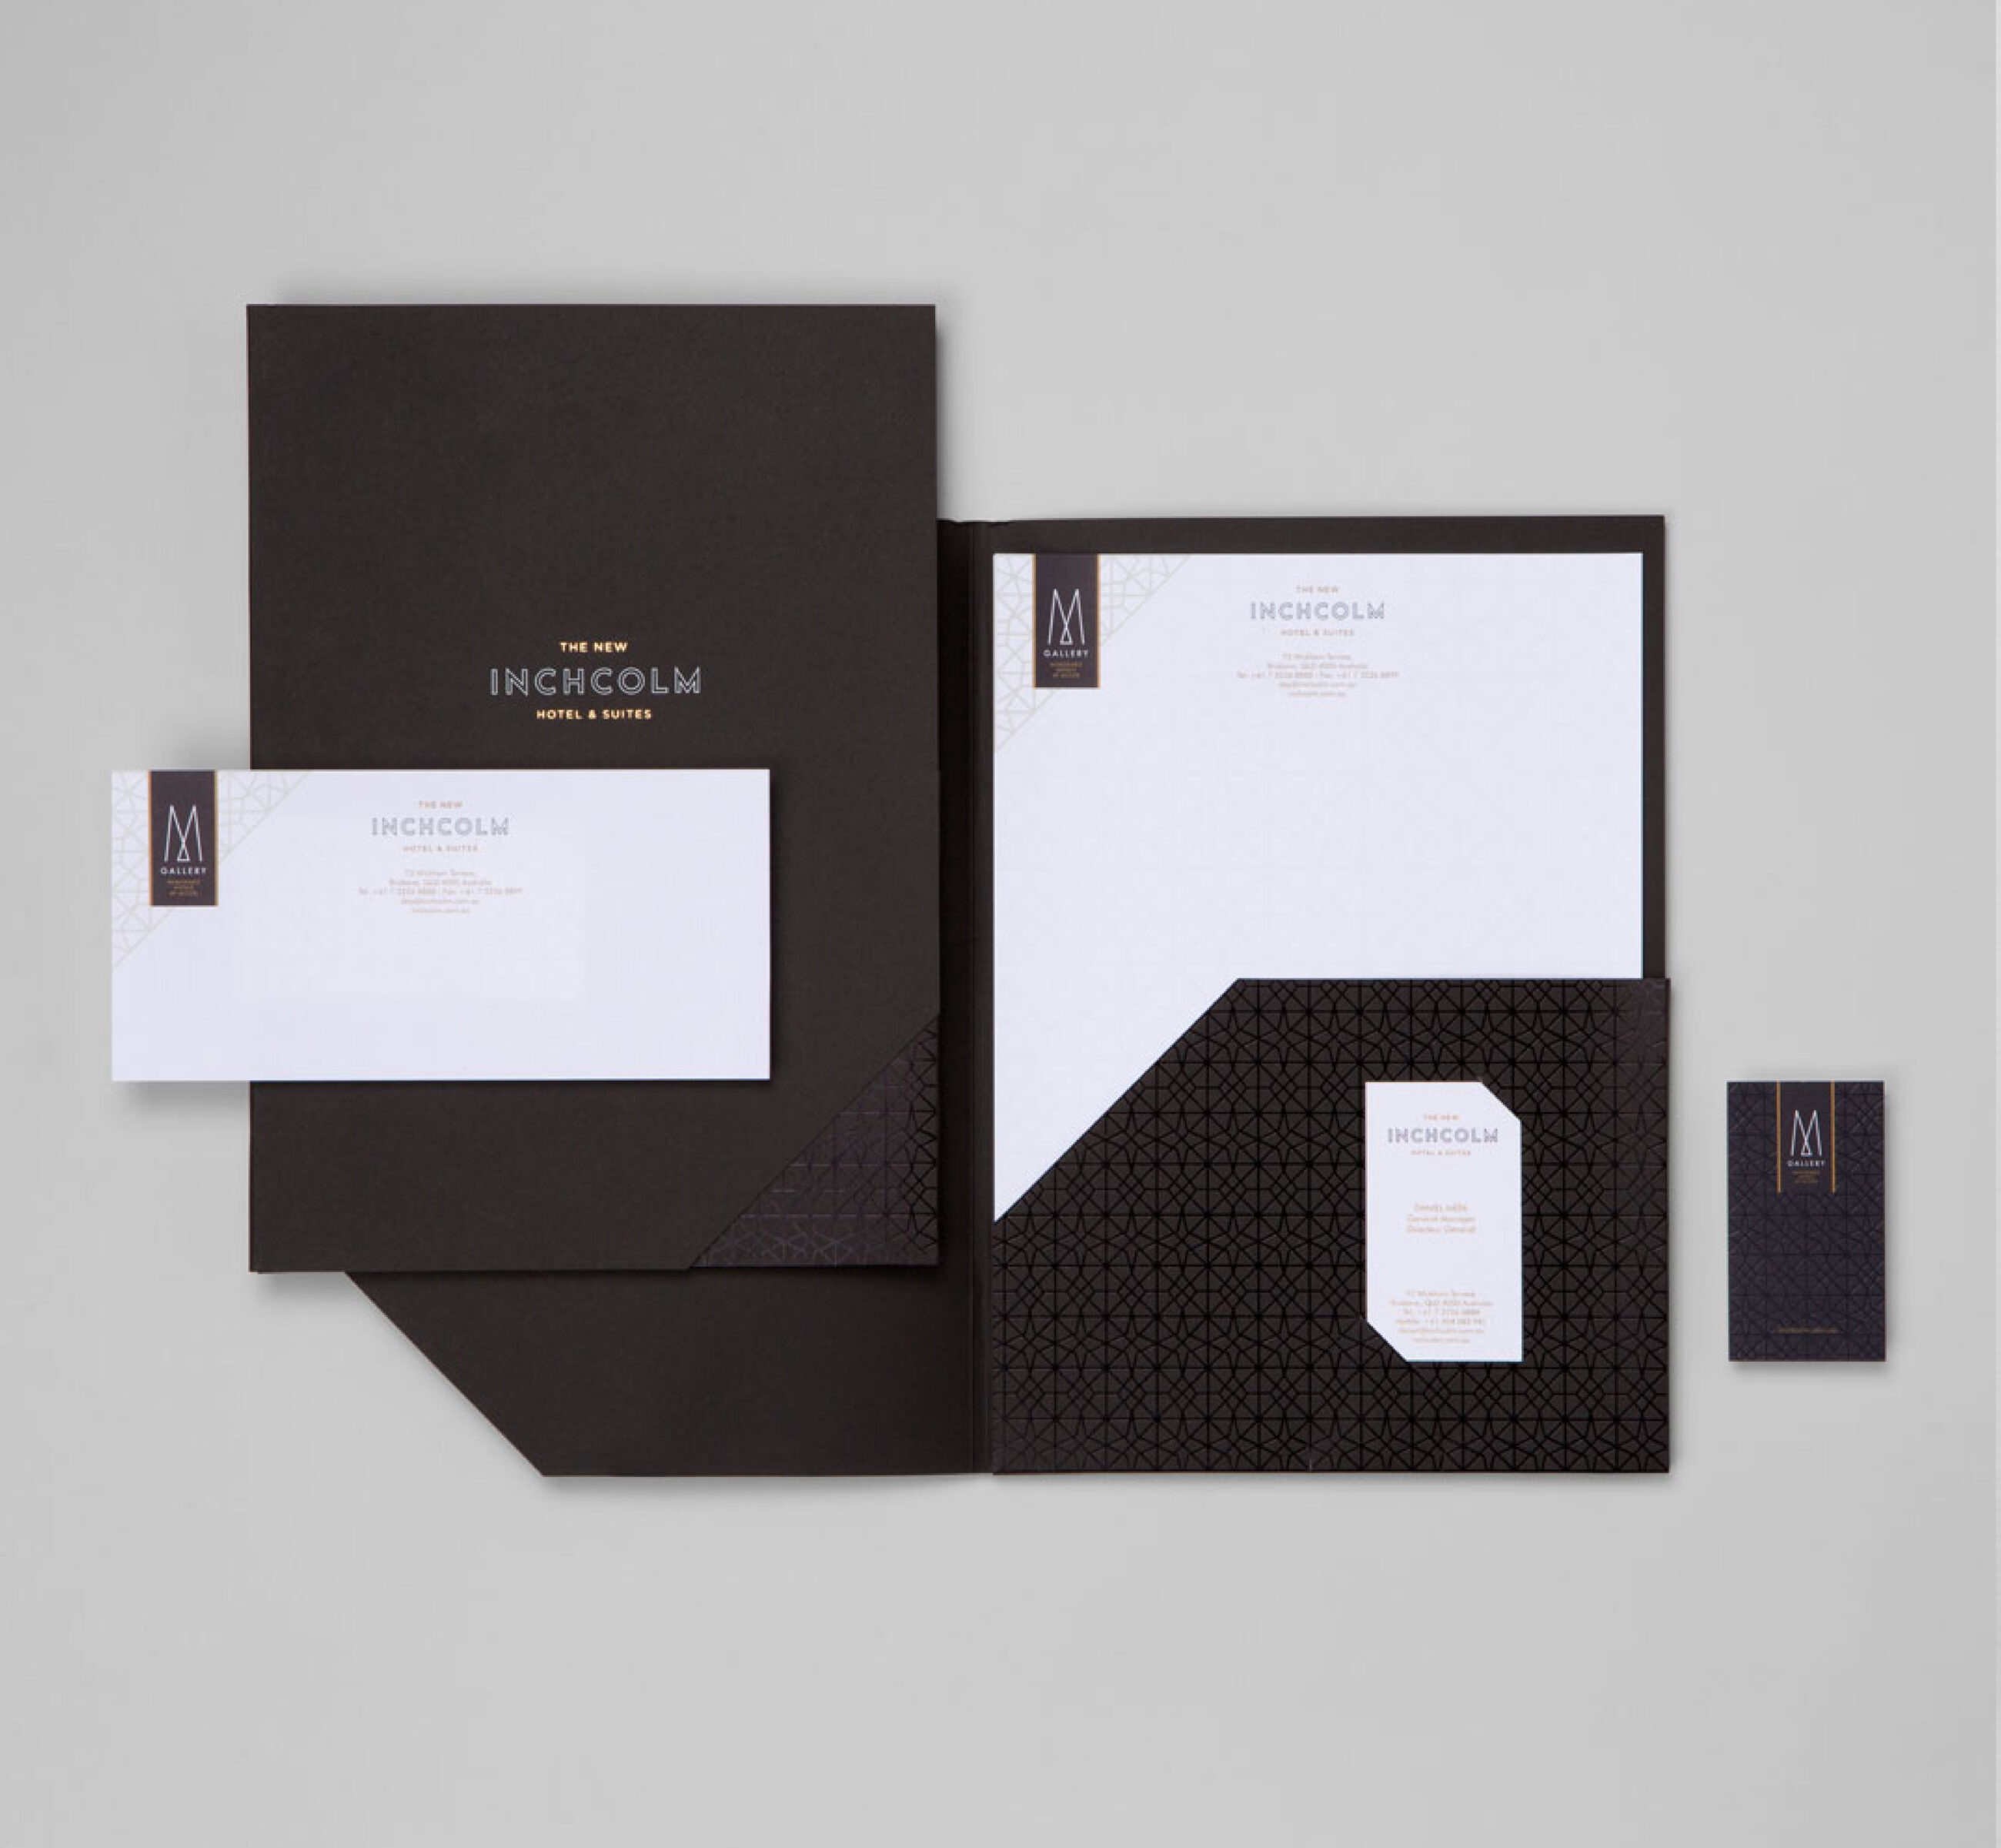 Inchcolm Hotel - Stationery branding example